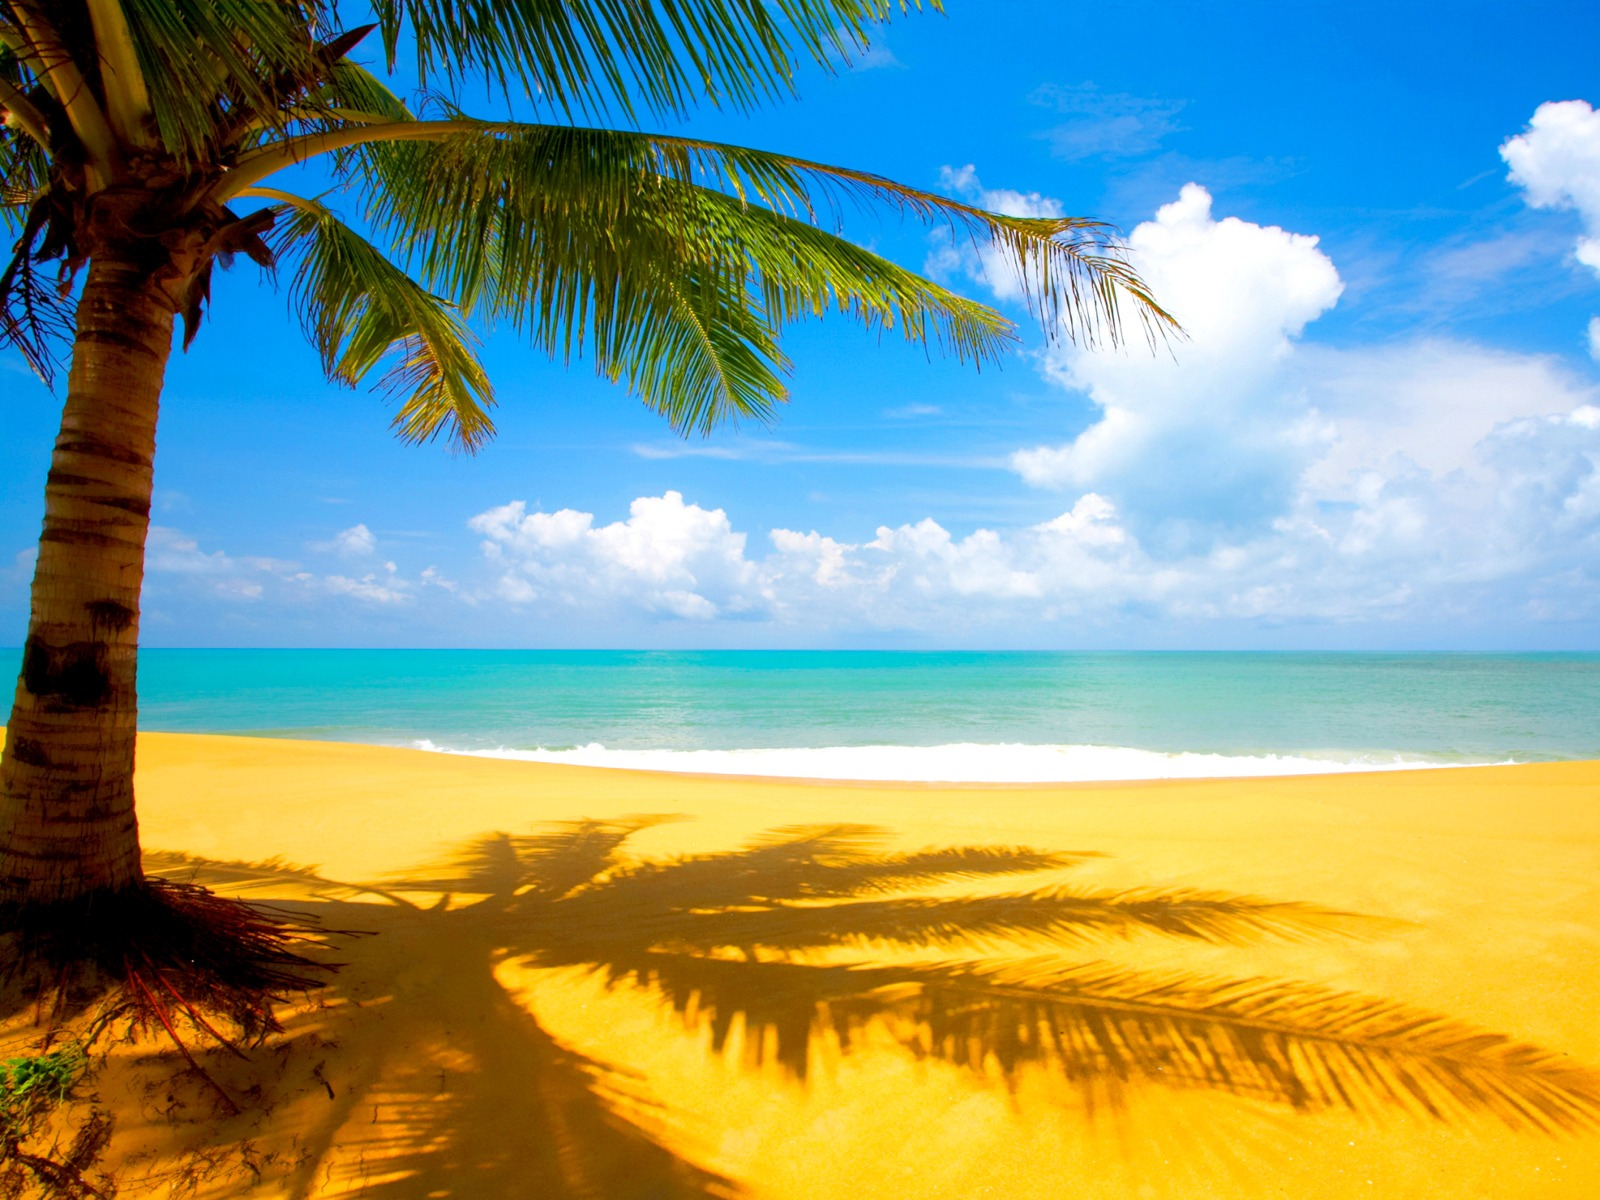 http://1.bp.blogspot.com/-vAcUBnCzw2k/TckaRQQkZOI/AAAAAAAAAE4/xPpOD_l22ks/s1600/palm-tree-beach-wallpaper.jpg